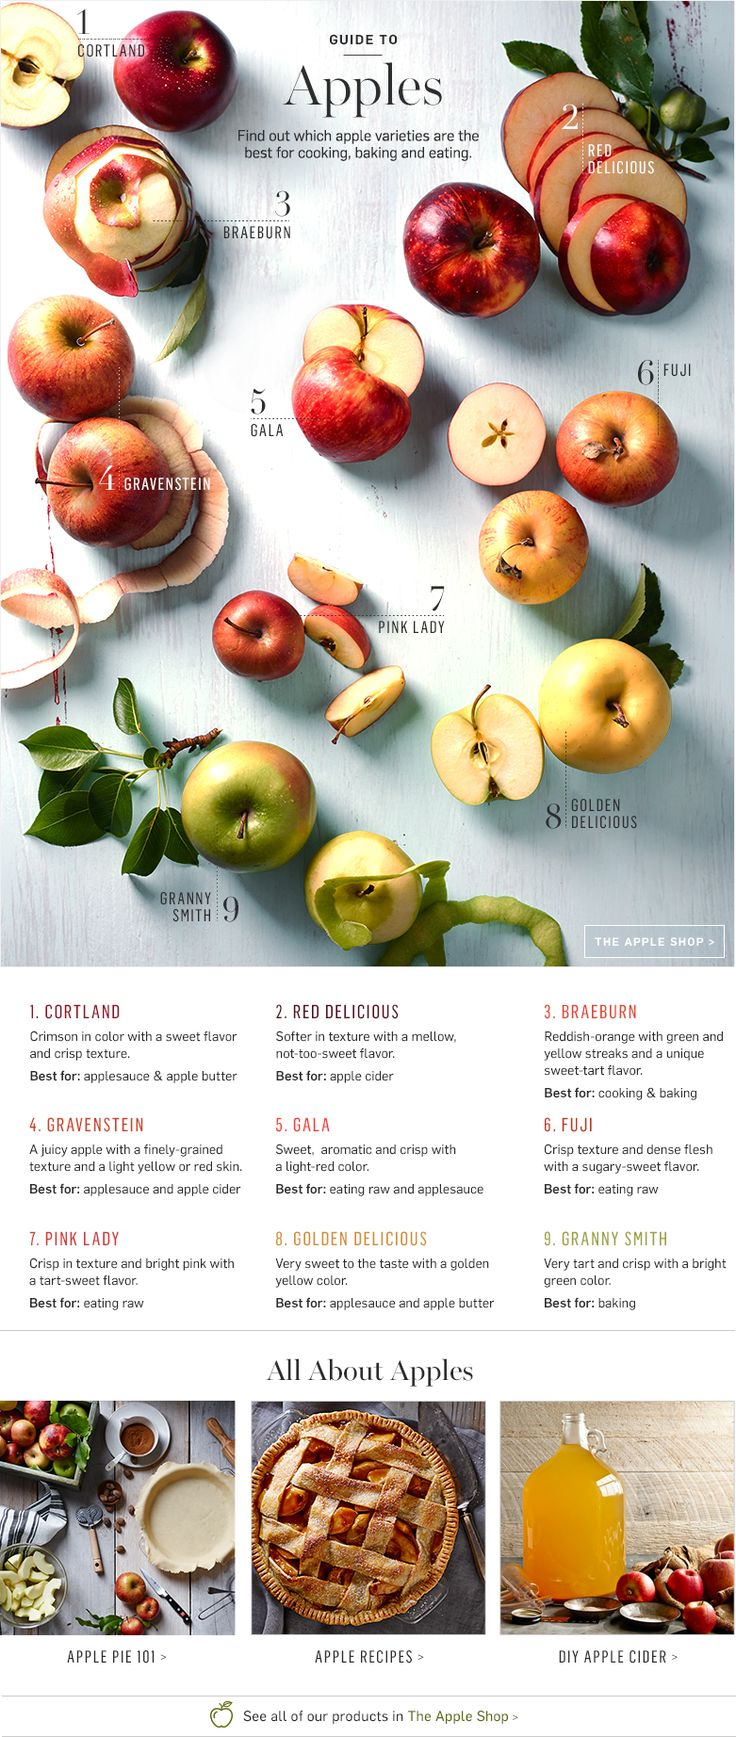 Apple Guide: Best Apples for Baking & Cooking with Apples | Williams-Sonoma | Williams-Sonoma